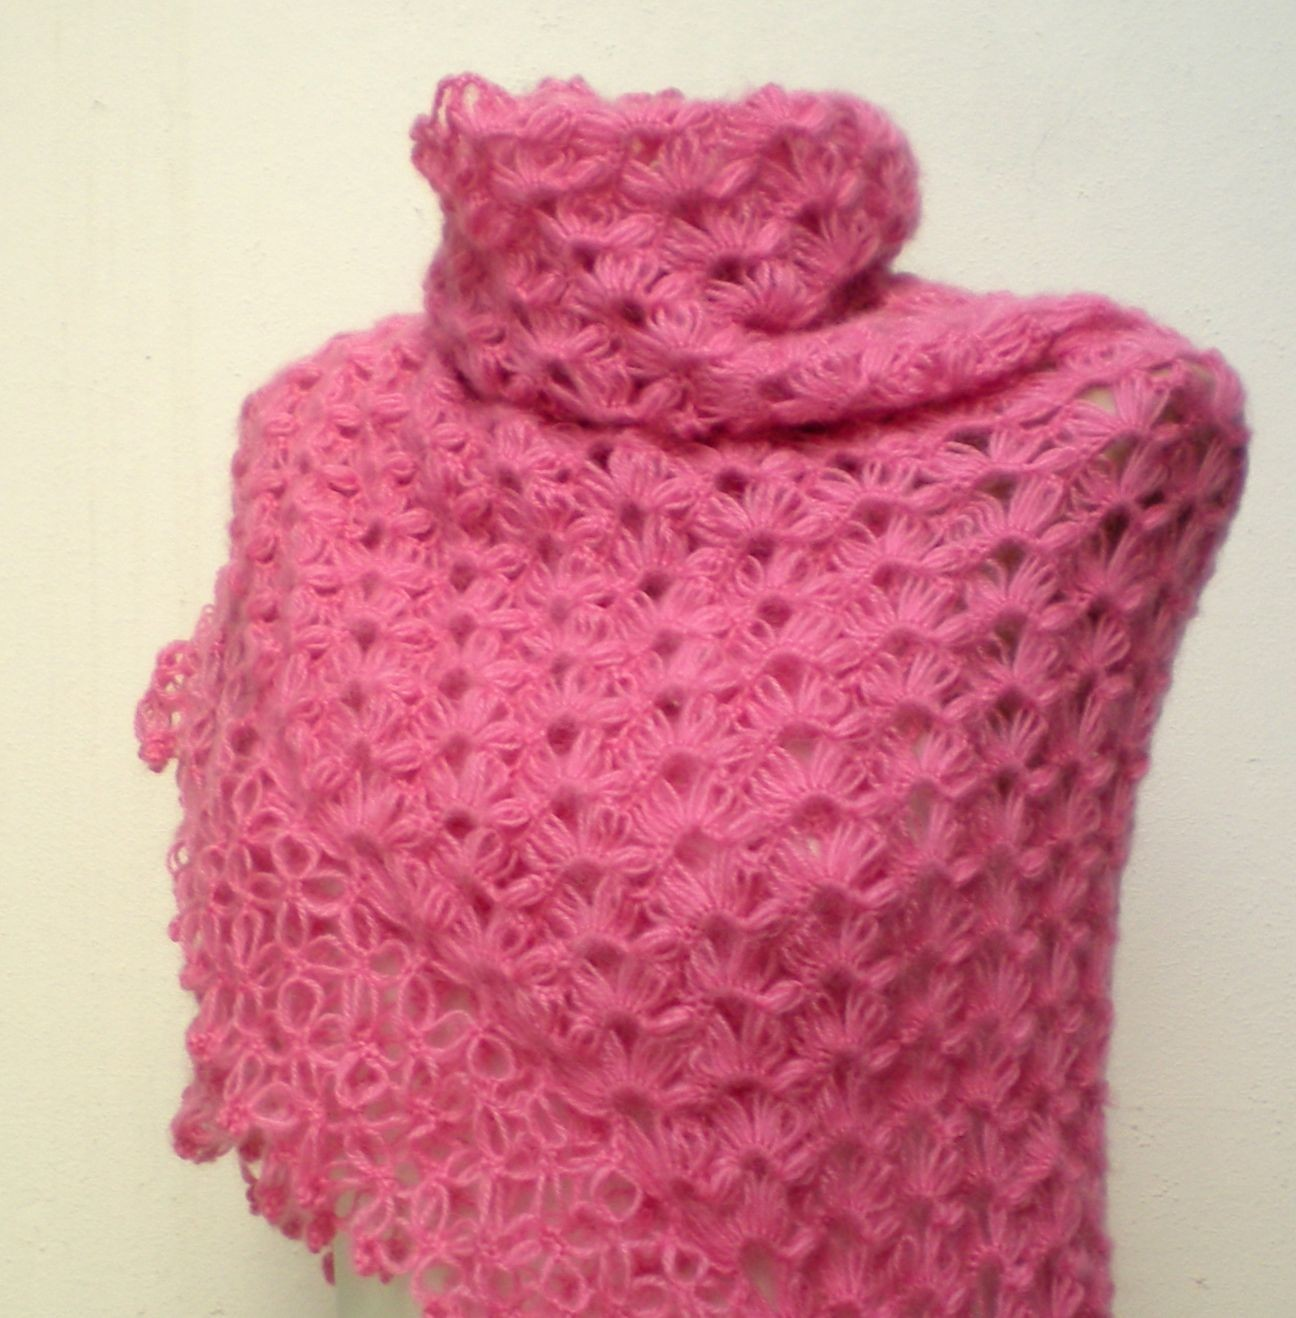 Knitting Patterns For Wraps Free : free knitting pattern: best 2012 knitting shawl patterns